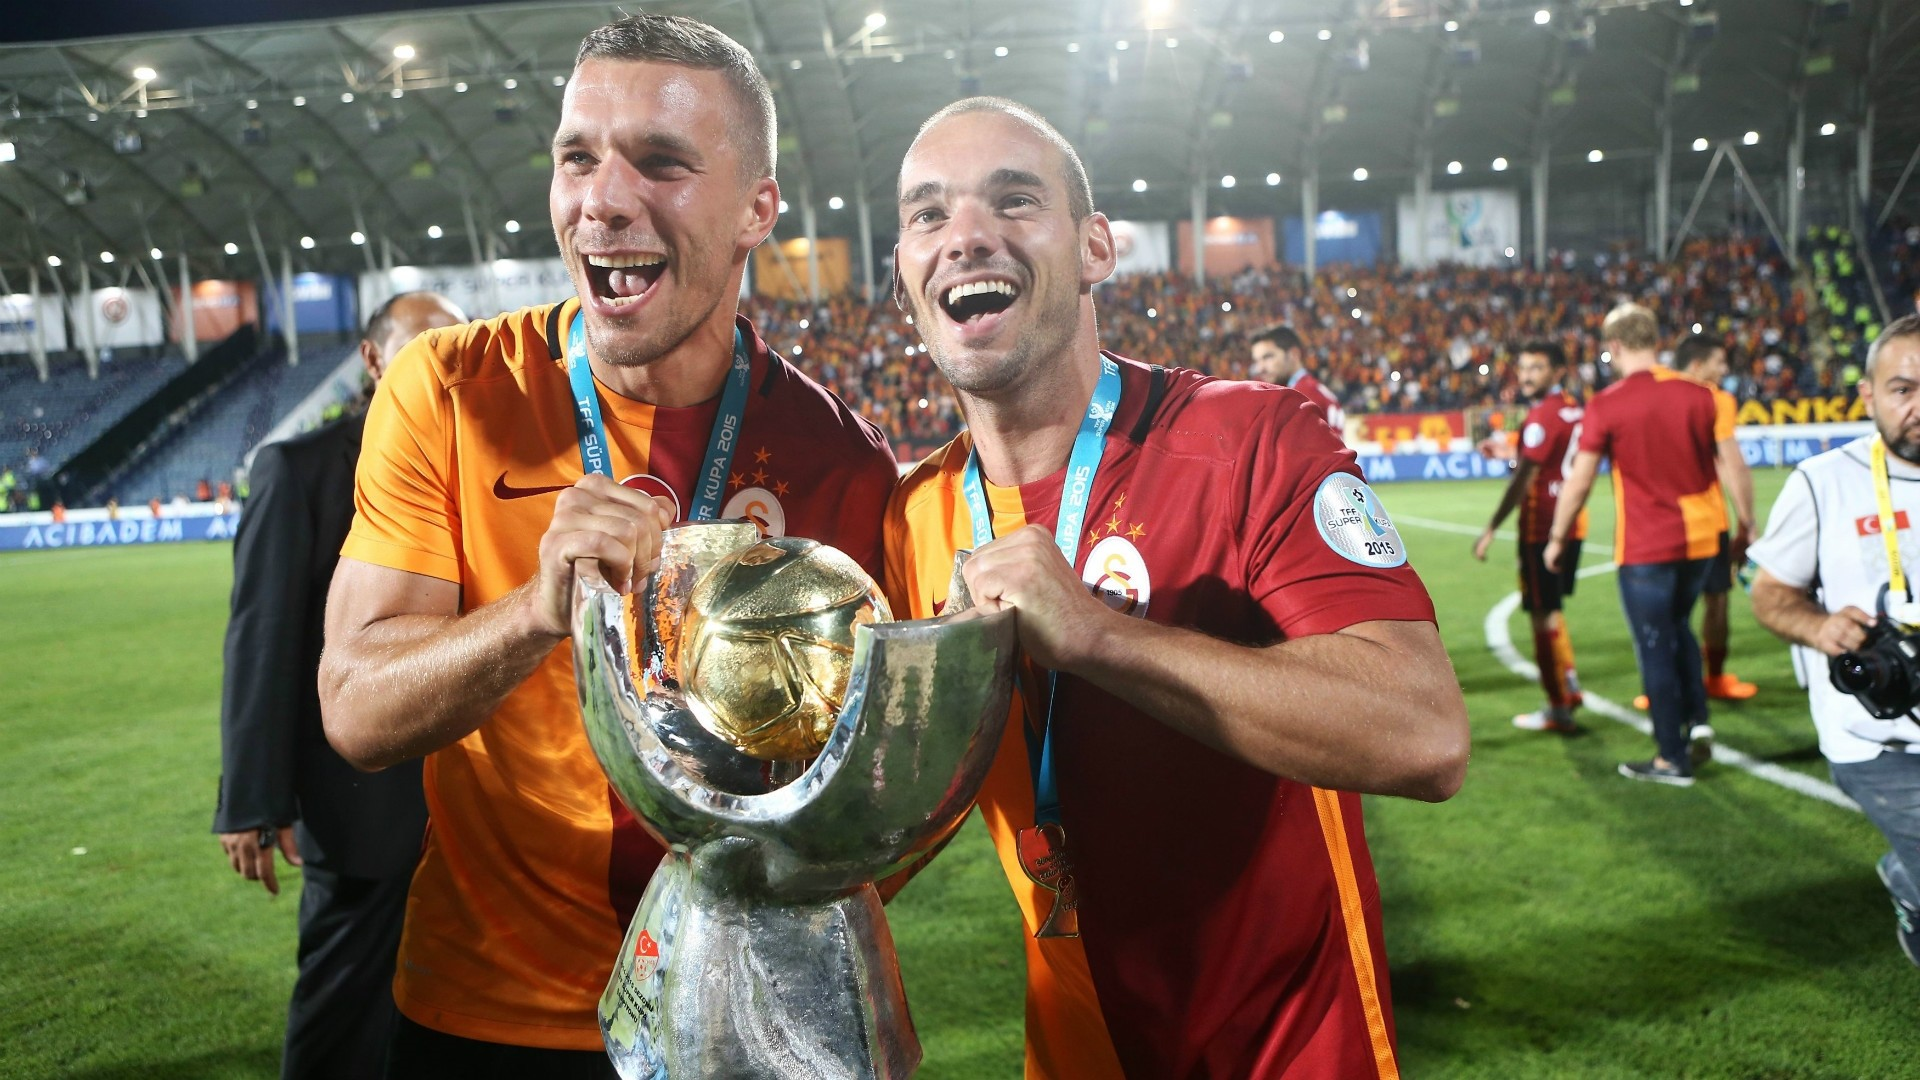 Galatasaray players Lukas Podolski (L) and Wesley Sneijder hold the trophy during a victory ceremony after Super Cup match between Galatasaray and Bursaspor in Ankara in 2015.